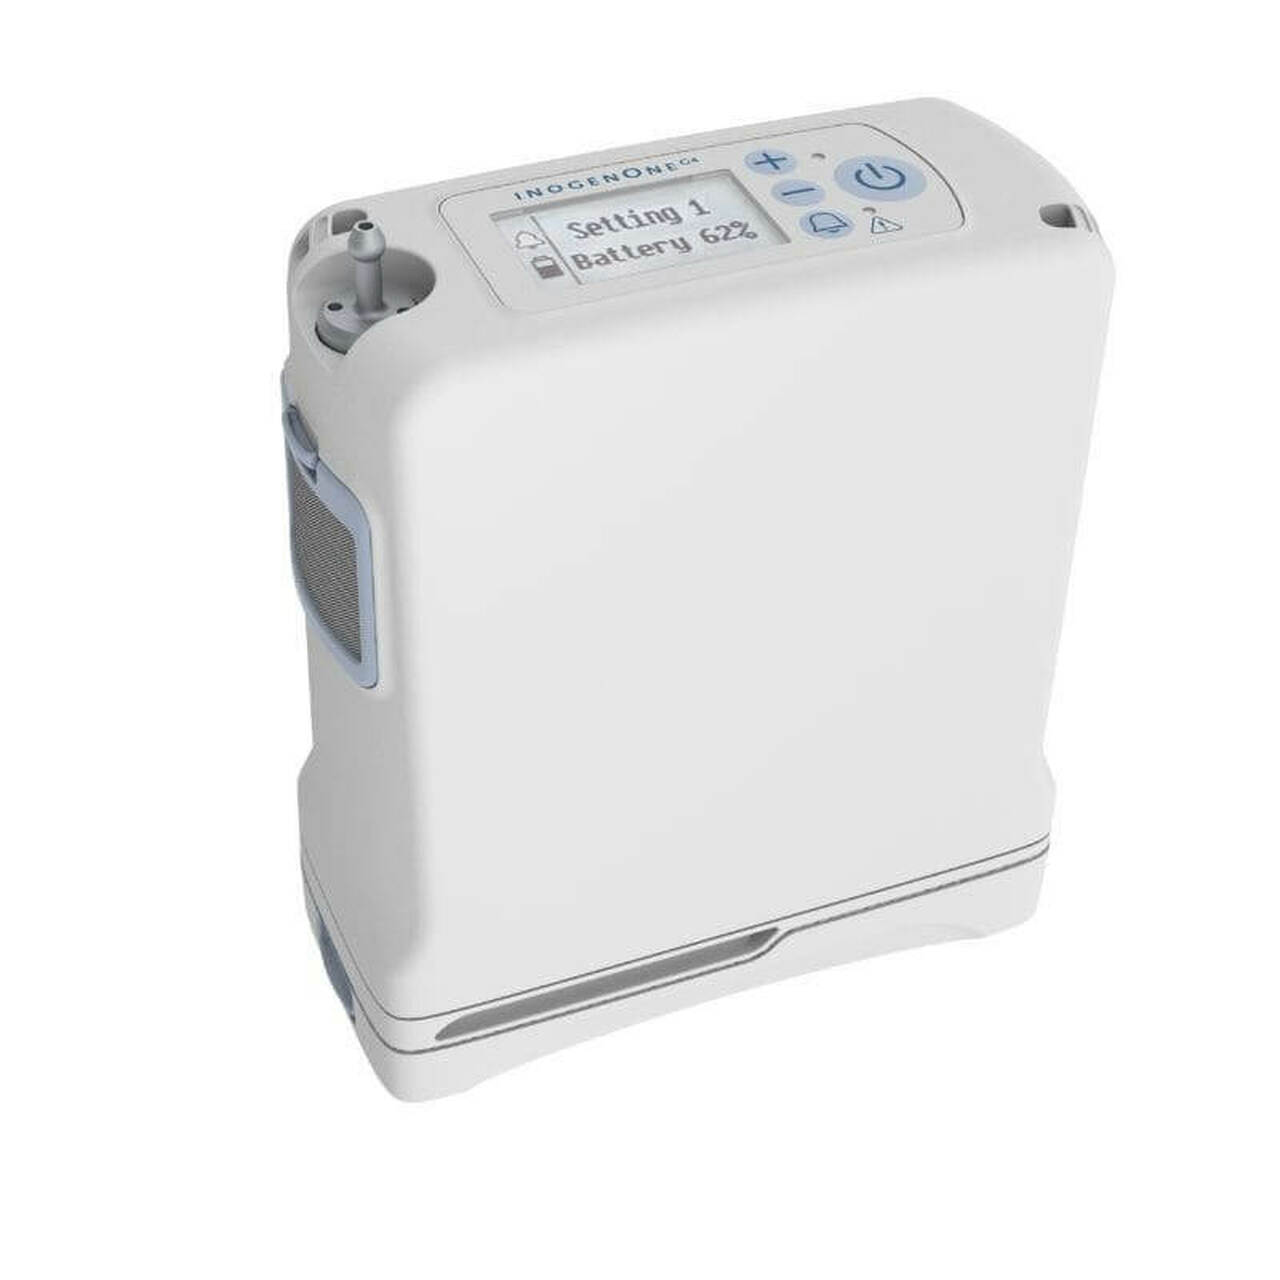 Inogen One G4 Portable Oxygen Concentrator for Sale